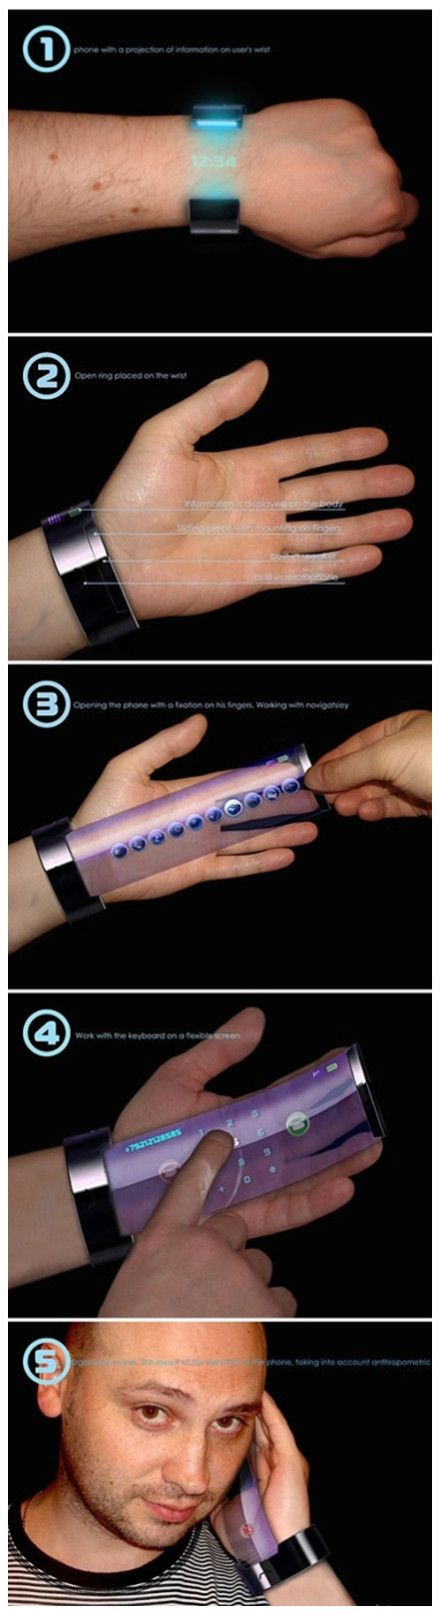 Really a brilliant concept of #wearable cell phones pull out from arm wrist band, starters  for #future that can be much smart than current one's